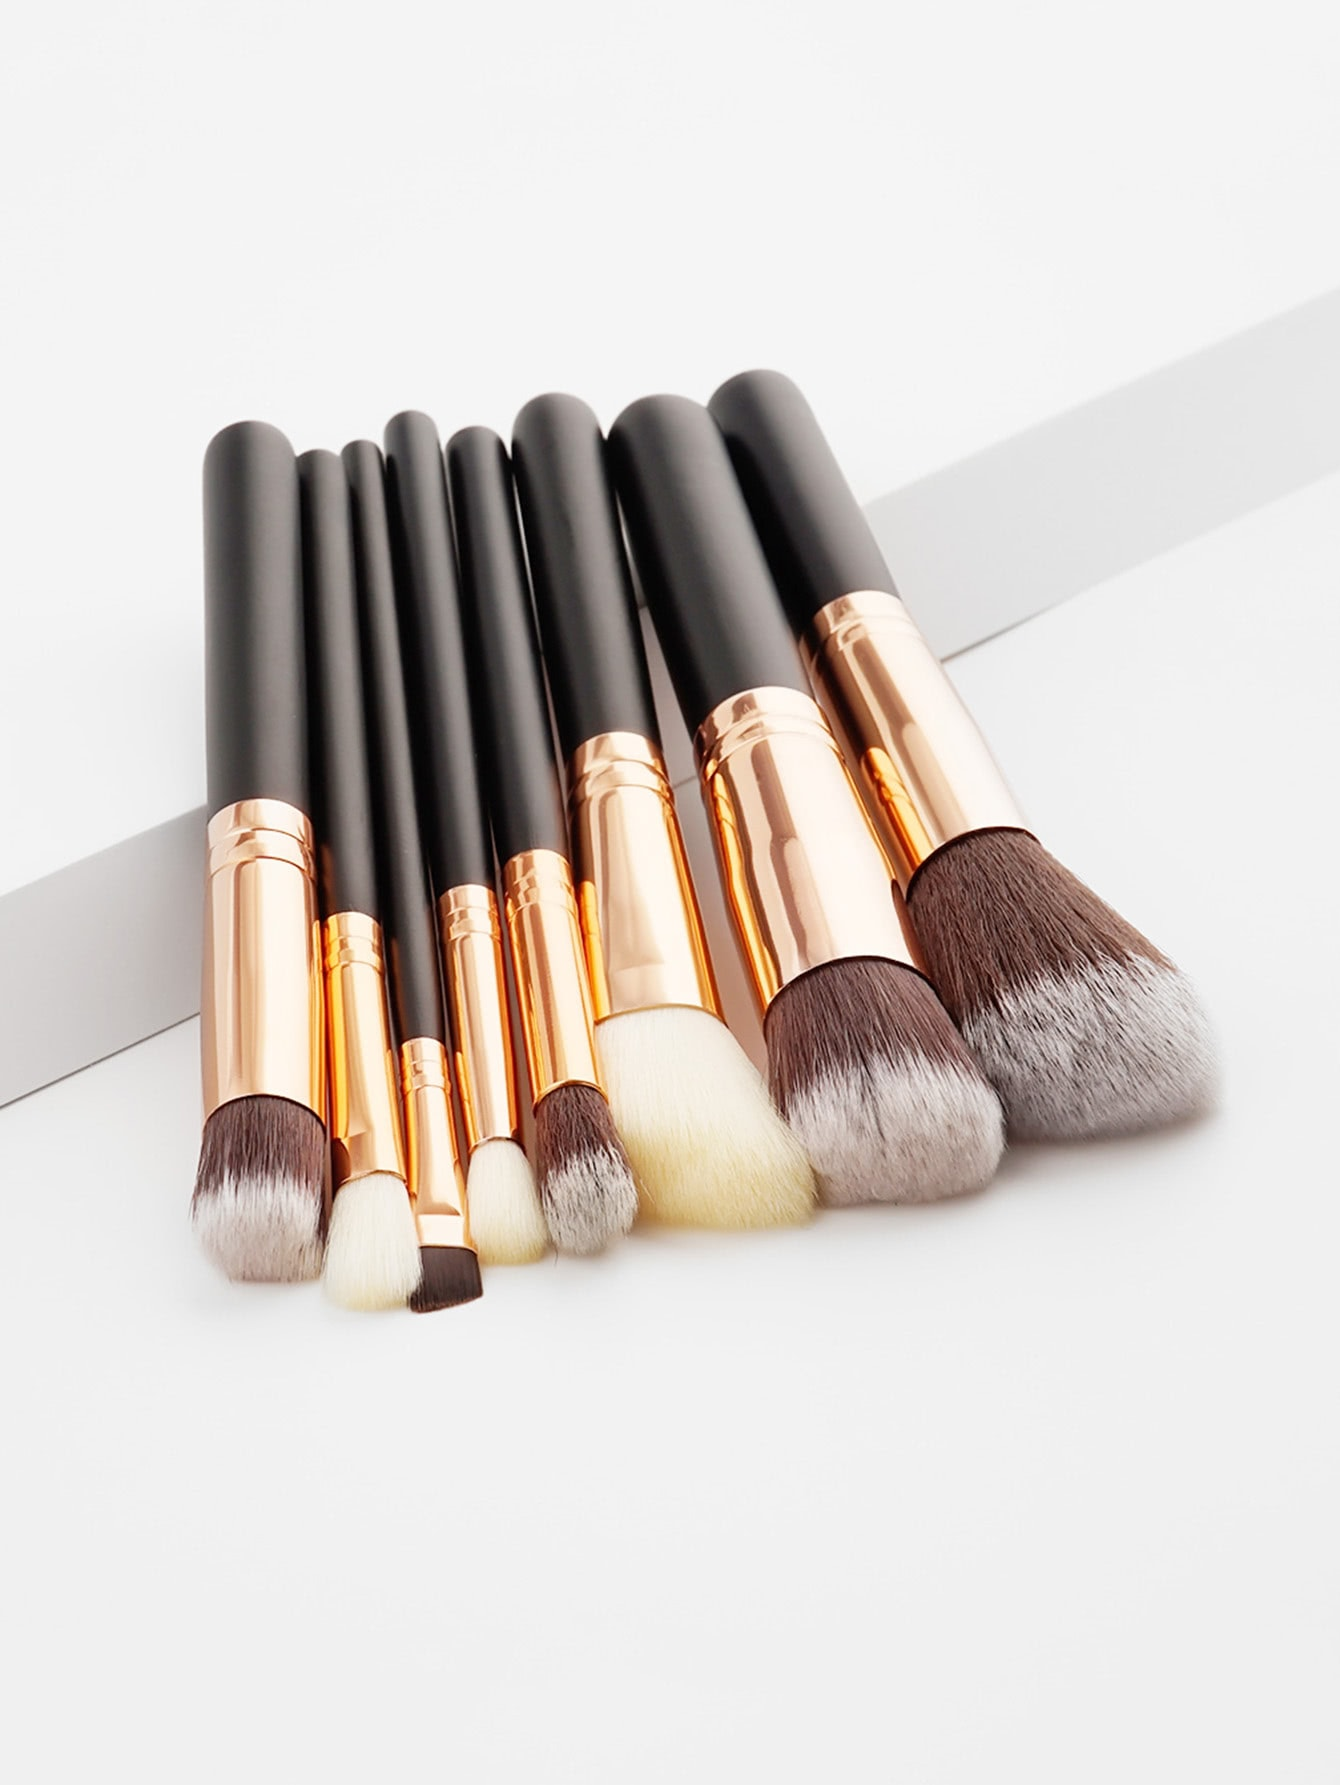 Soft Bristle Makeup Brush Set 8pcs -SheIn(Sheinside